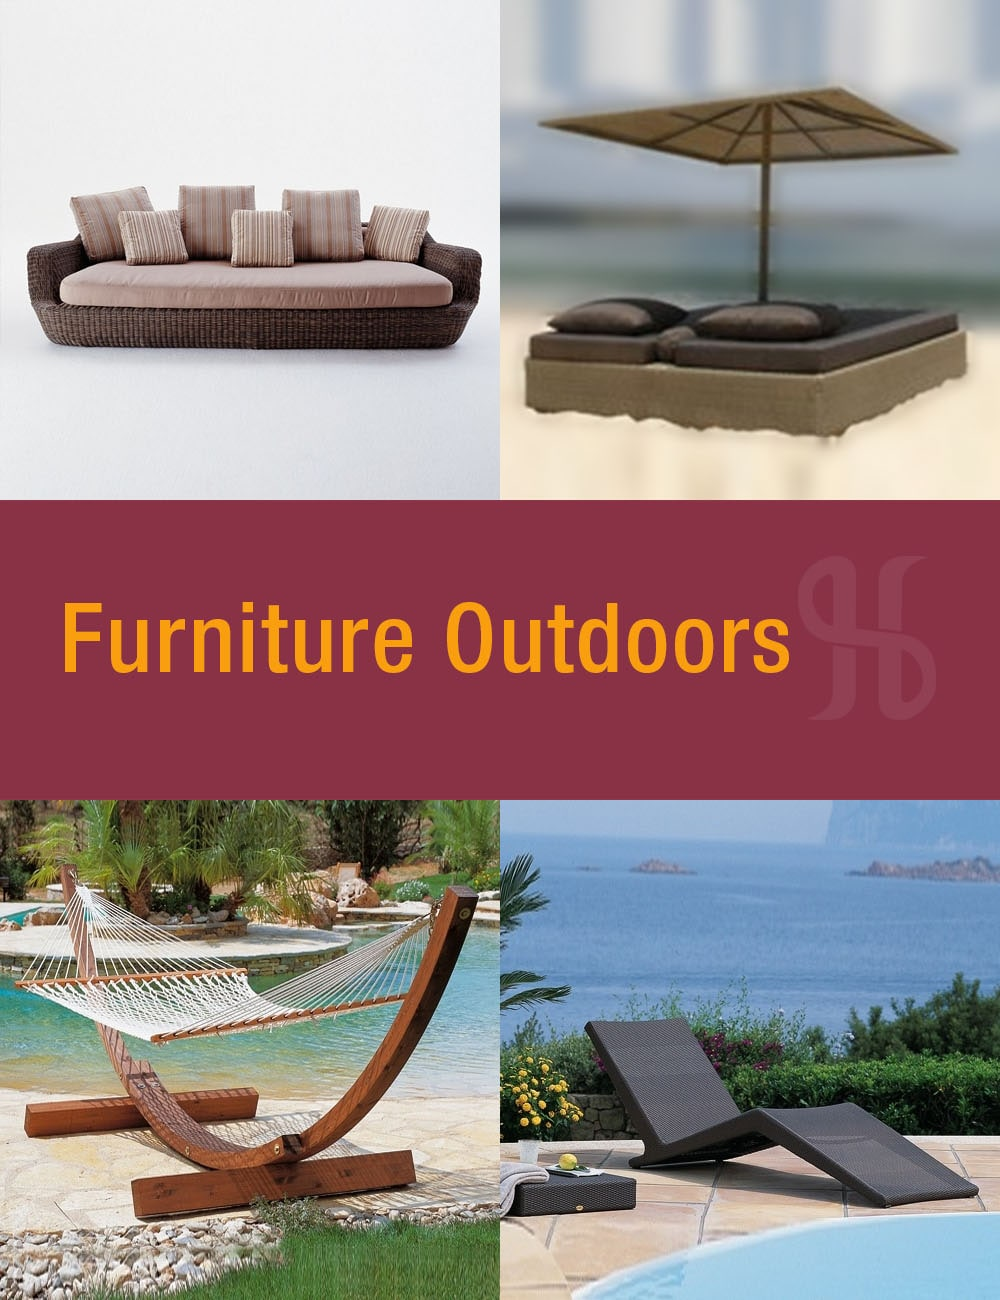 Furniture Outdoors